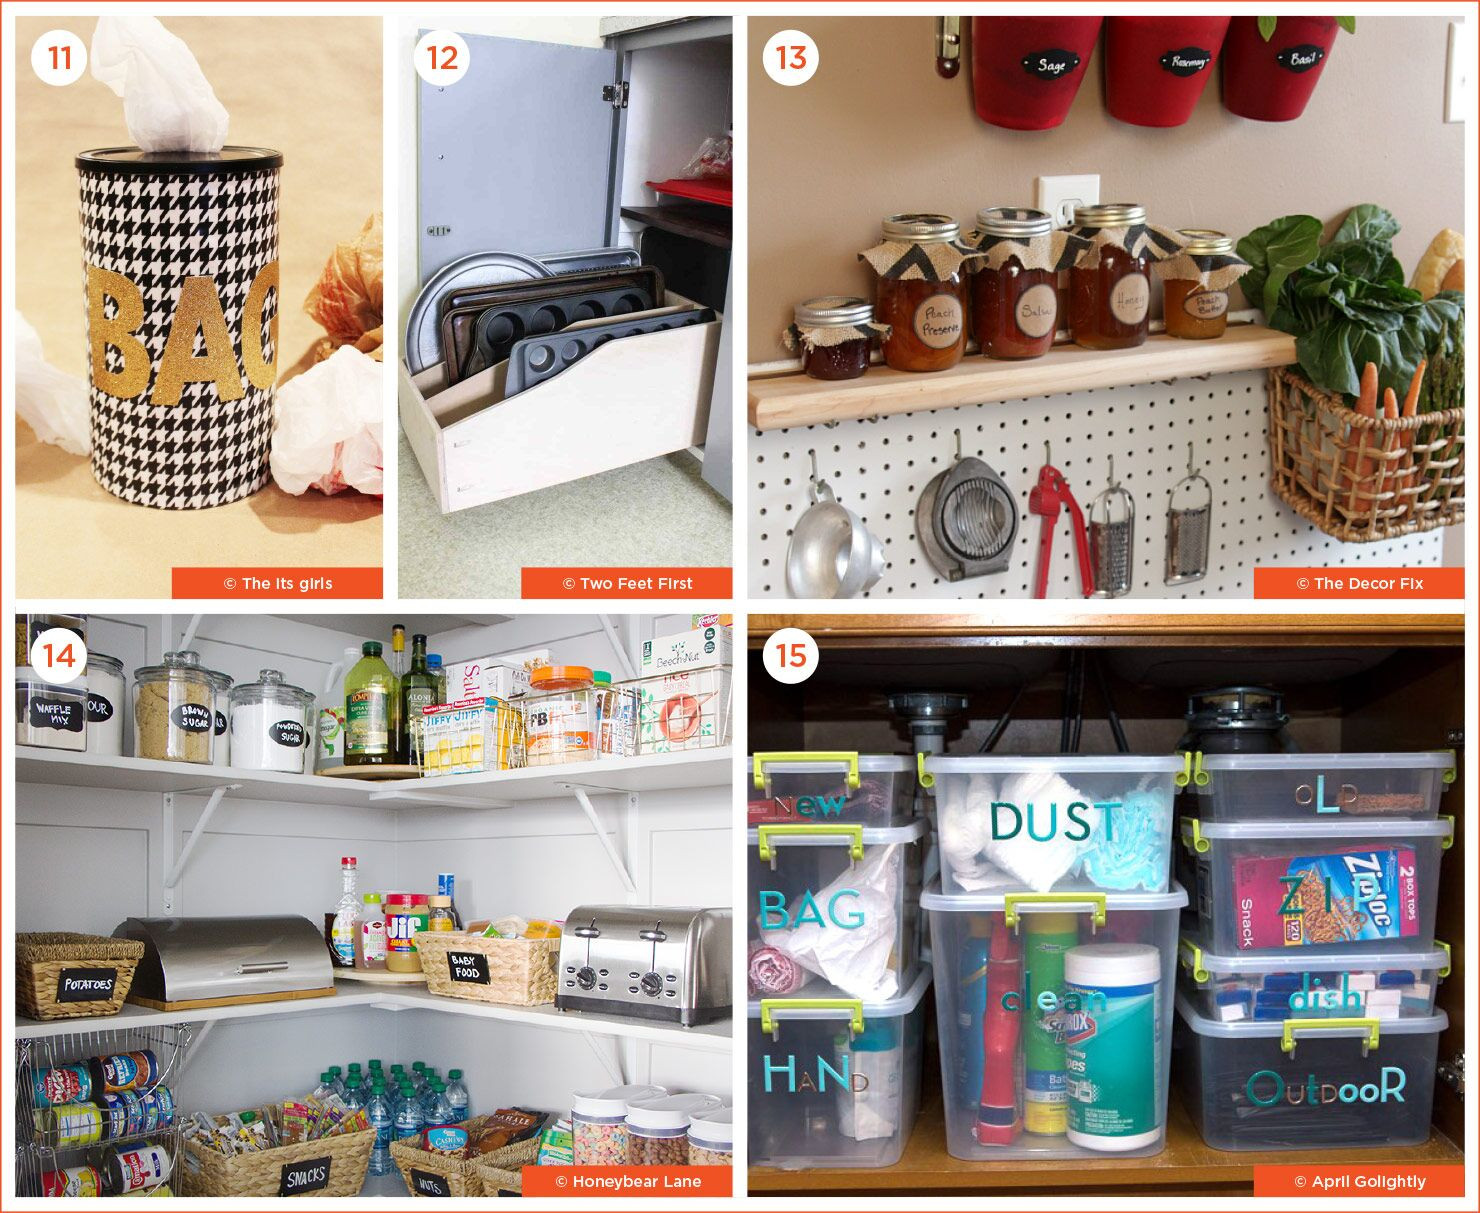 DIY Organization Ideas  71 DIY Organization Ideas to Get Your Life in Order